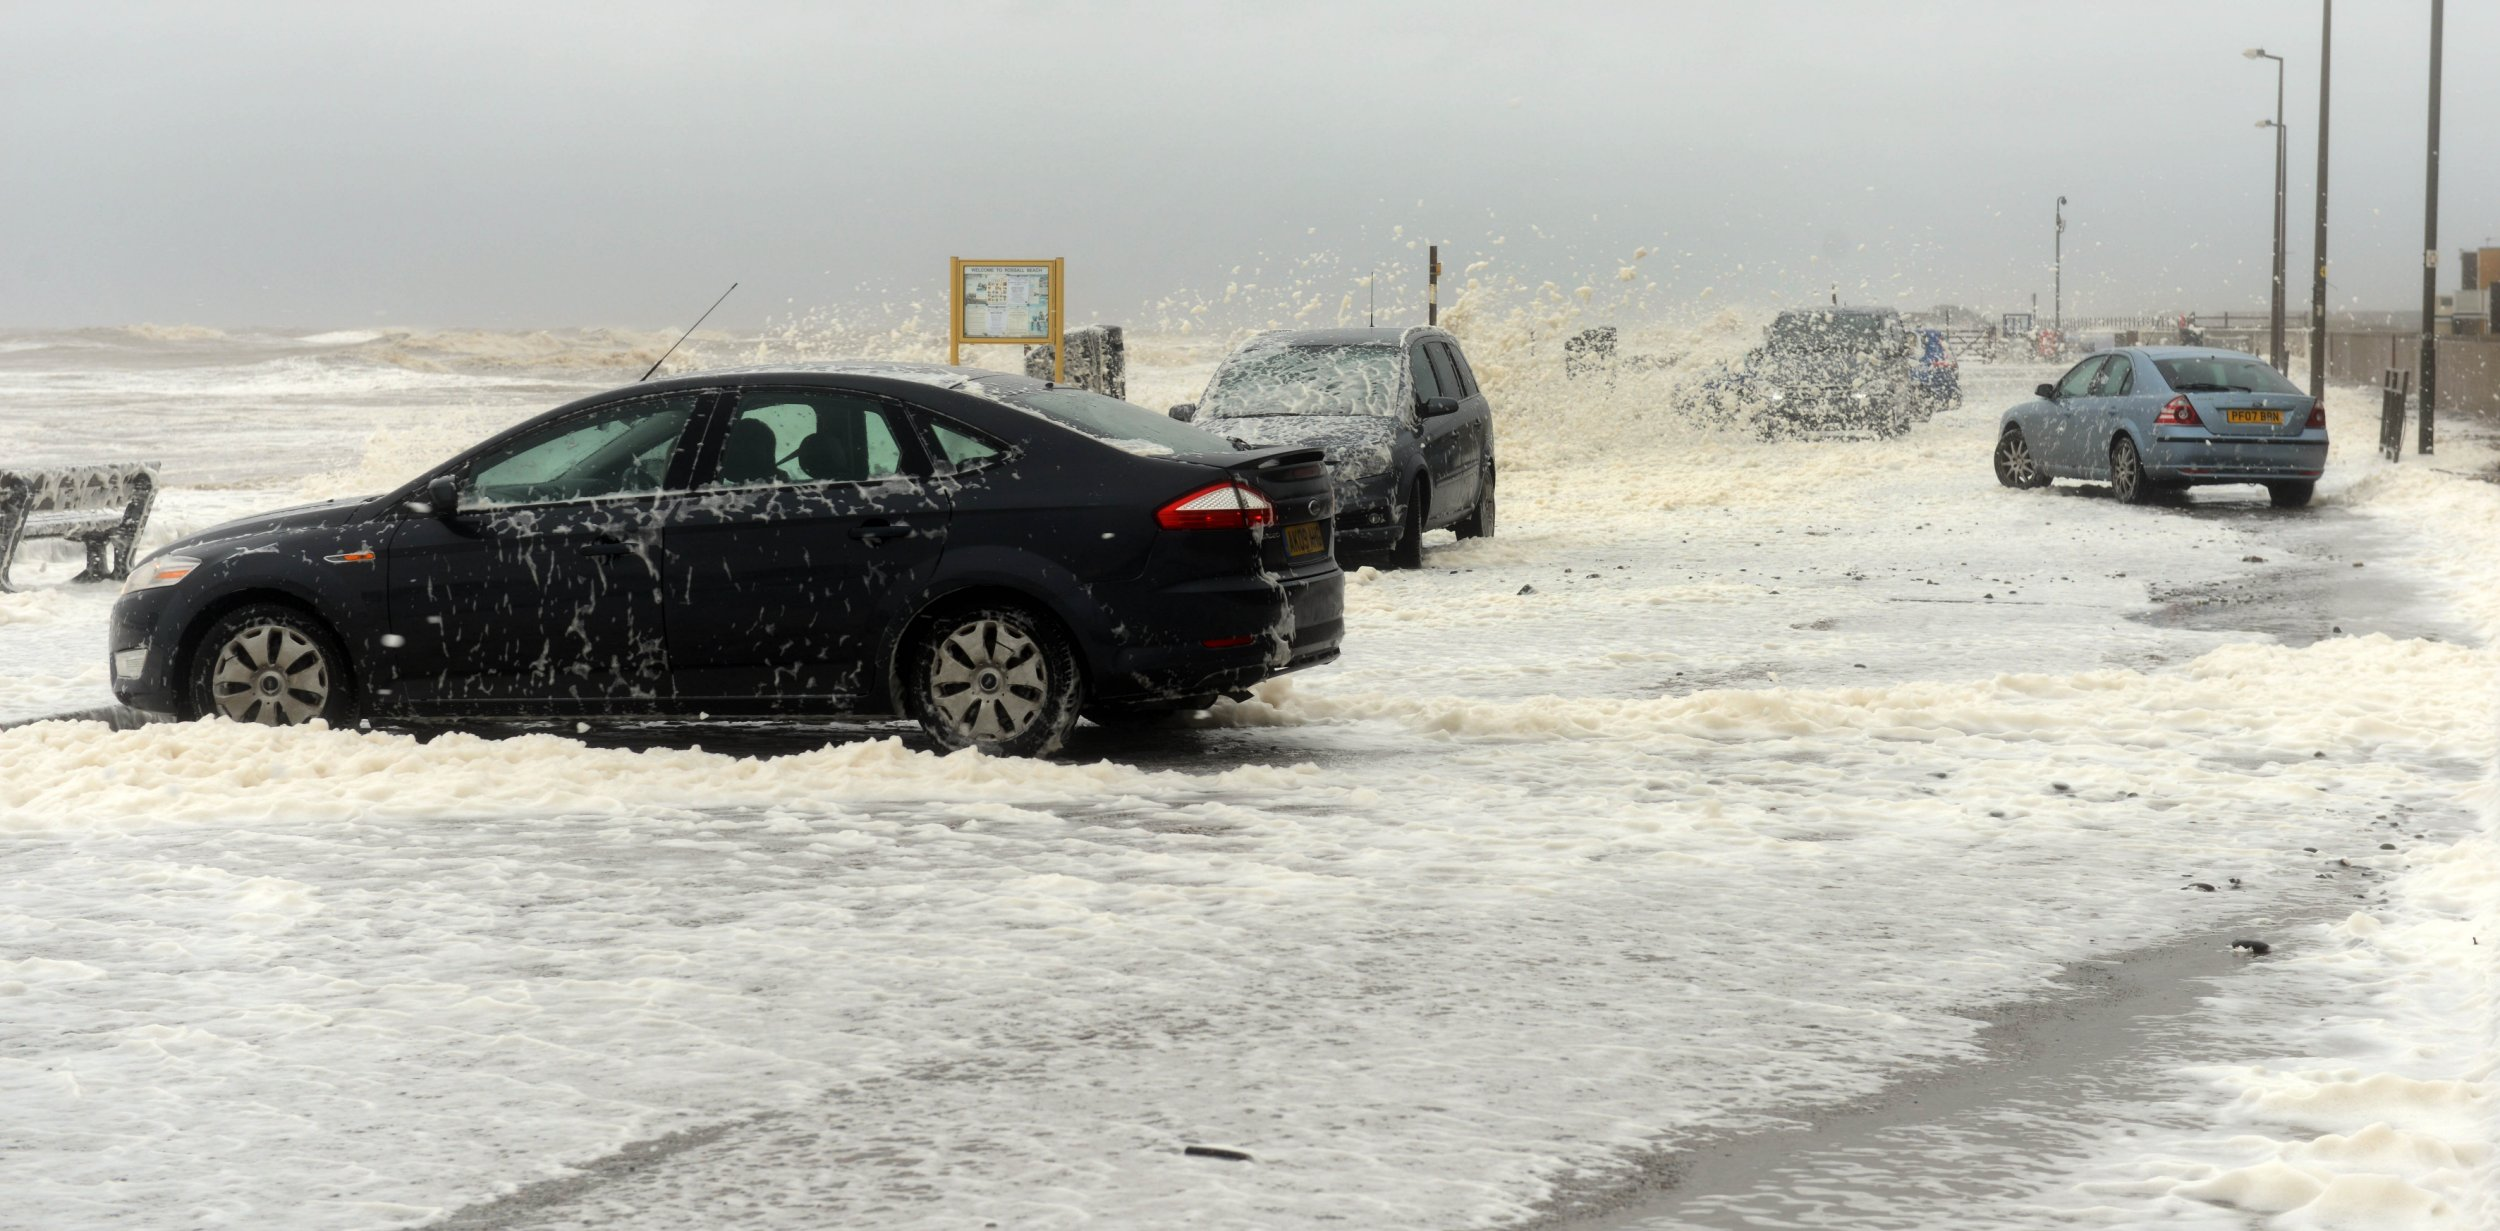 Foam from the sea covers cars in Cleveleys, Lancs., making driving conditions difficult. Heavy rain and gale-force winds are set to batter the UK with the arrival of the storm that brought severe blizzards to the US. The Met Office has issued a warning for heavy rain on Tuesday for the west of the UK, with 100mm (four inches) expected in parts of Wales and England. 26 January 2016.